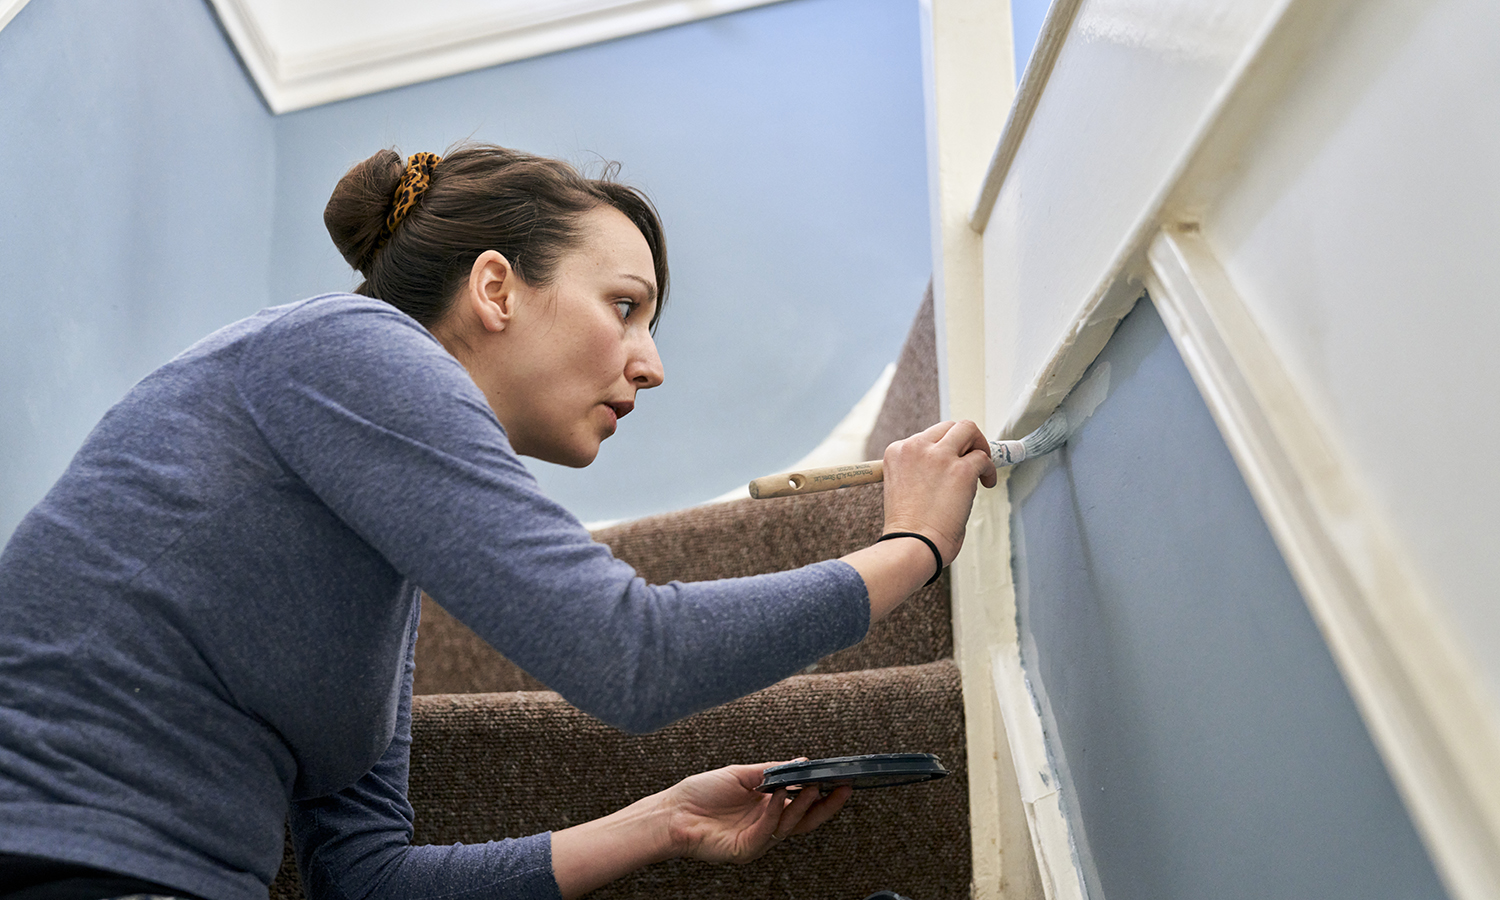 woman fixing up her home by painting a staircase